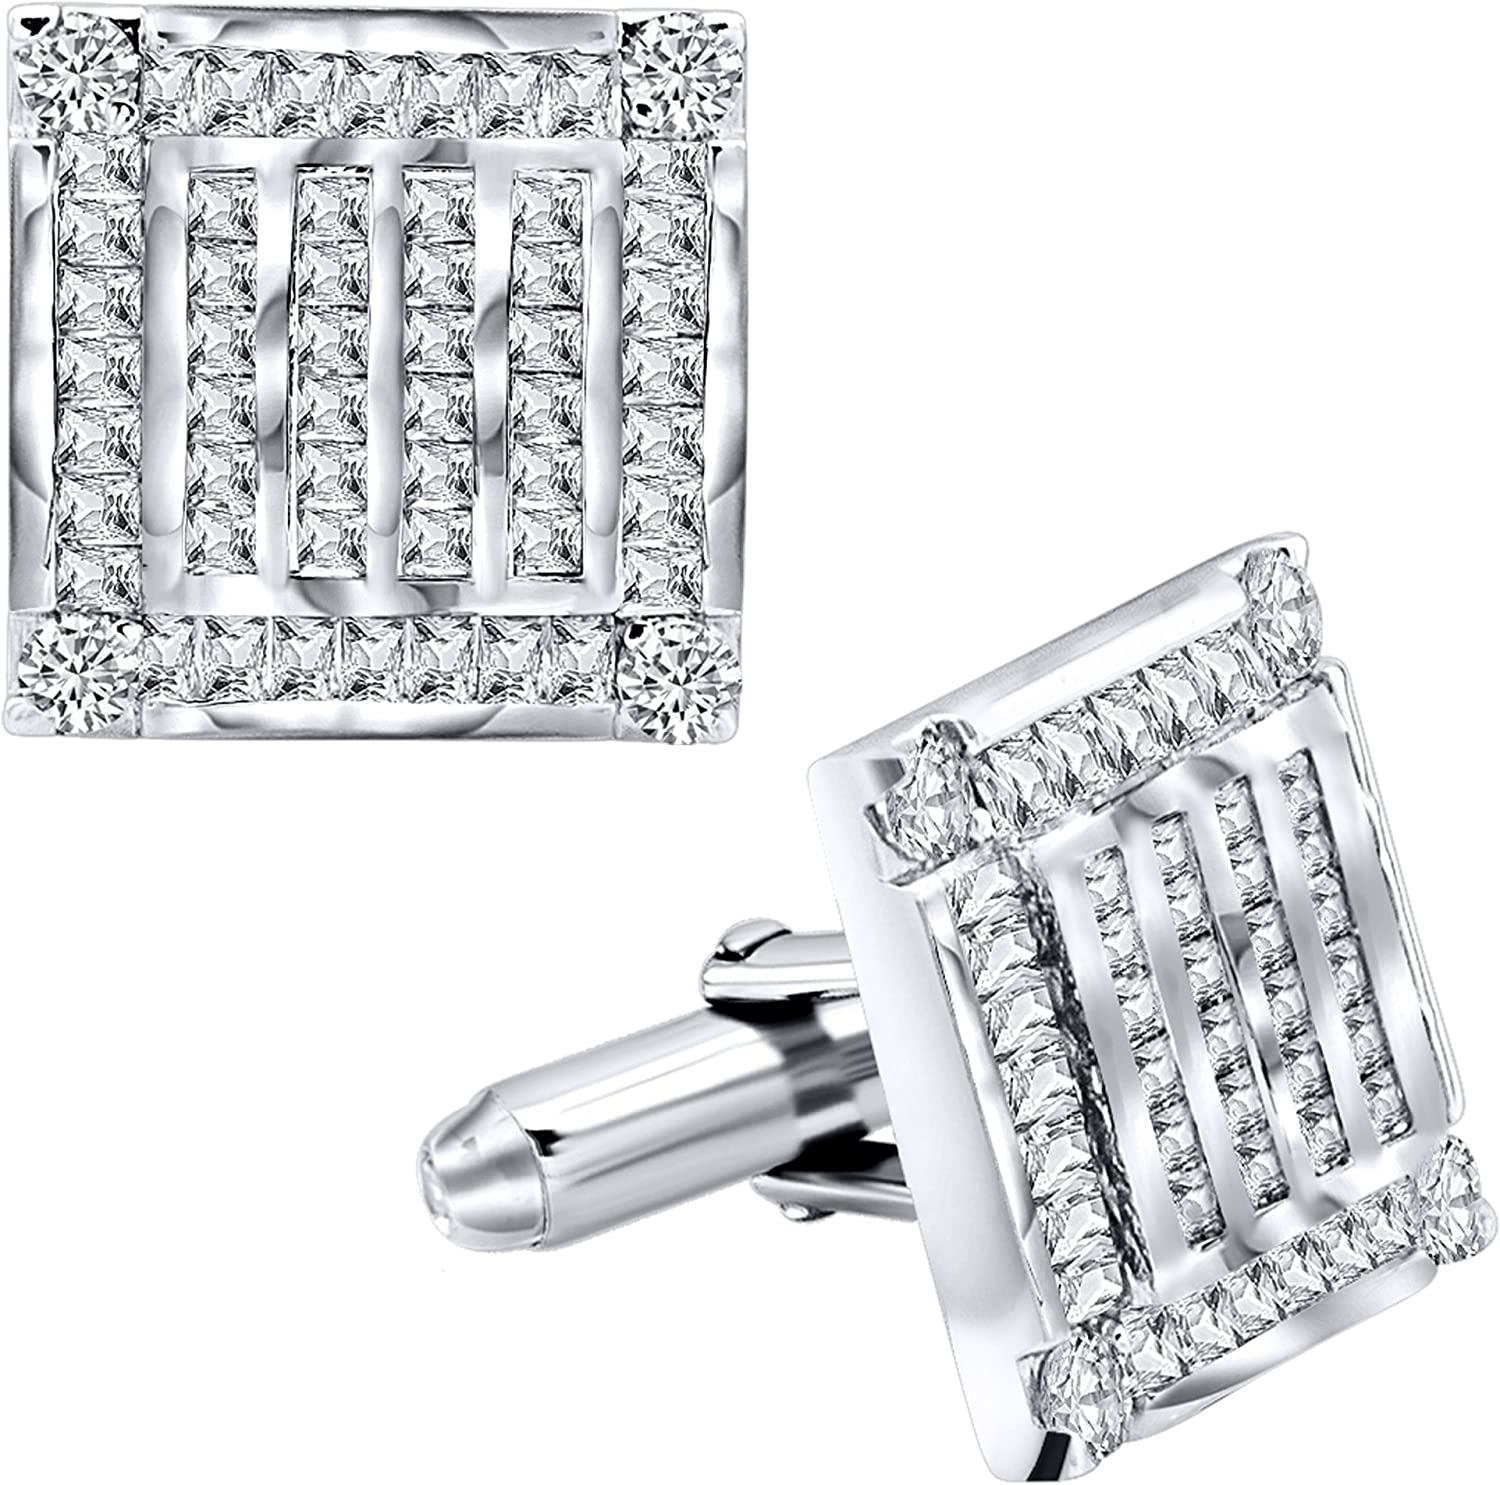 [2-5 Day Delivery] Men's Sterling Silver .925 Square Cufflinks with Channel-Set Baguette and Round Cubic Zirconia Stones, Platinum Plated. 18.5 mm. By Sterling Manufacturers